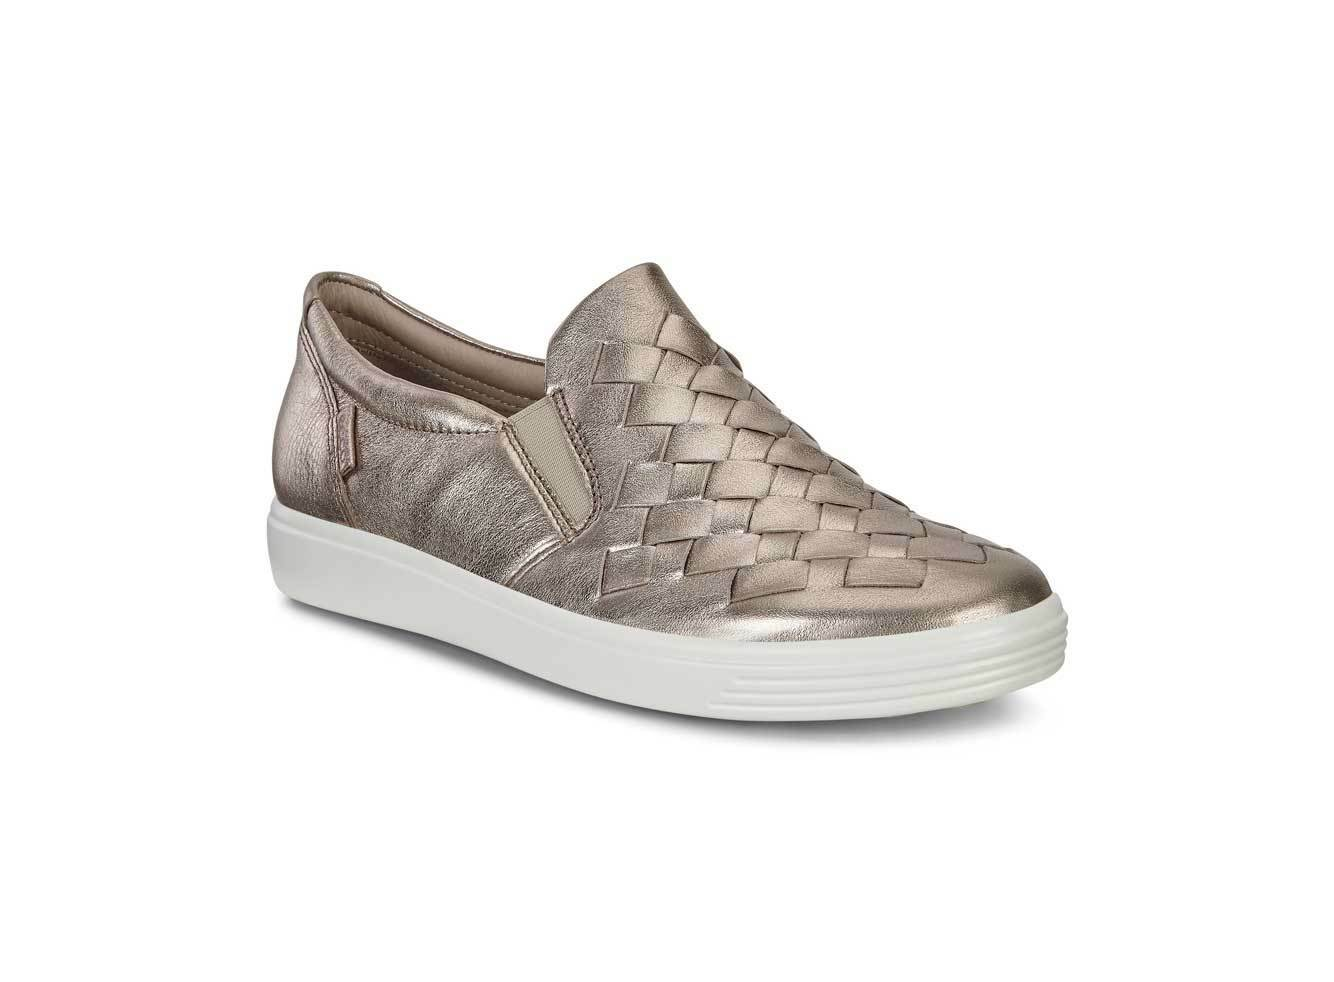 ECCO WOMEN'S SOFT7 LADIES WALKING COMFY SLIP-ON SNEAKER SHOE